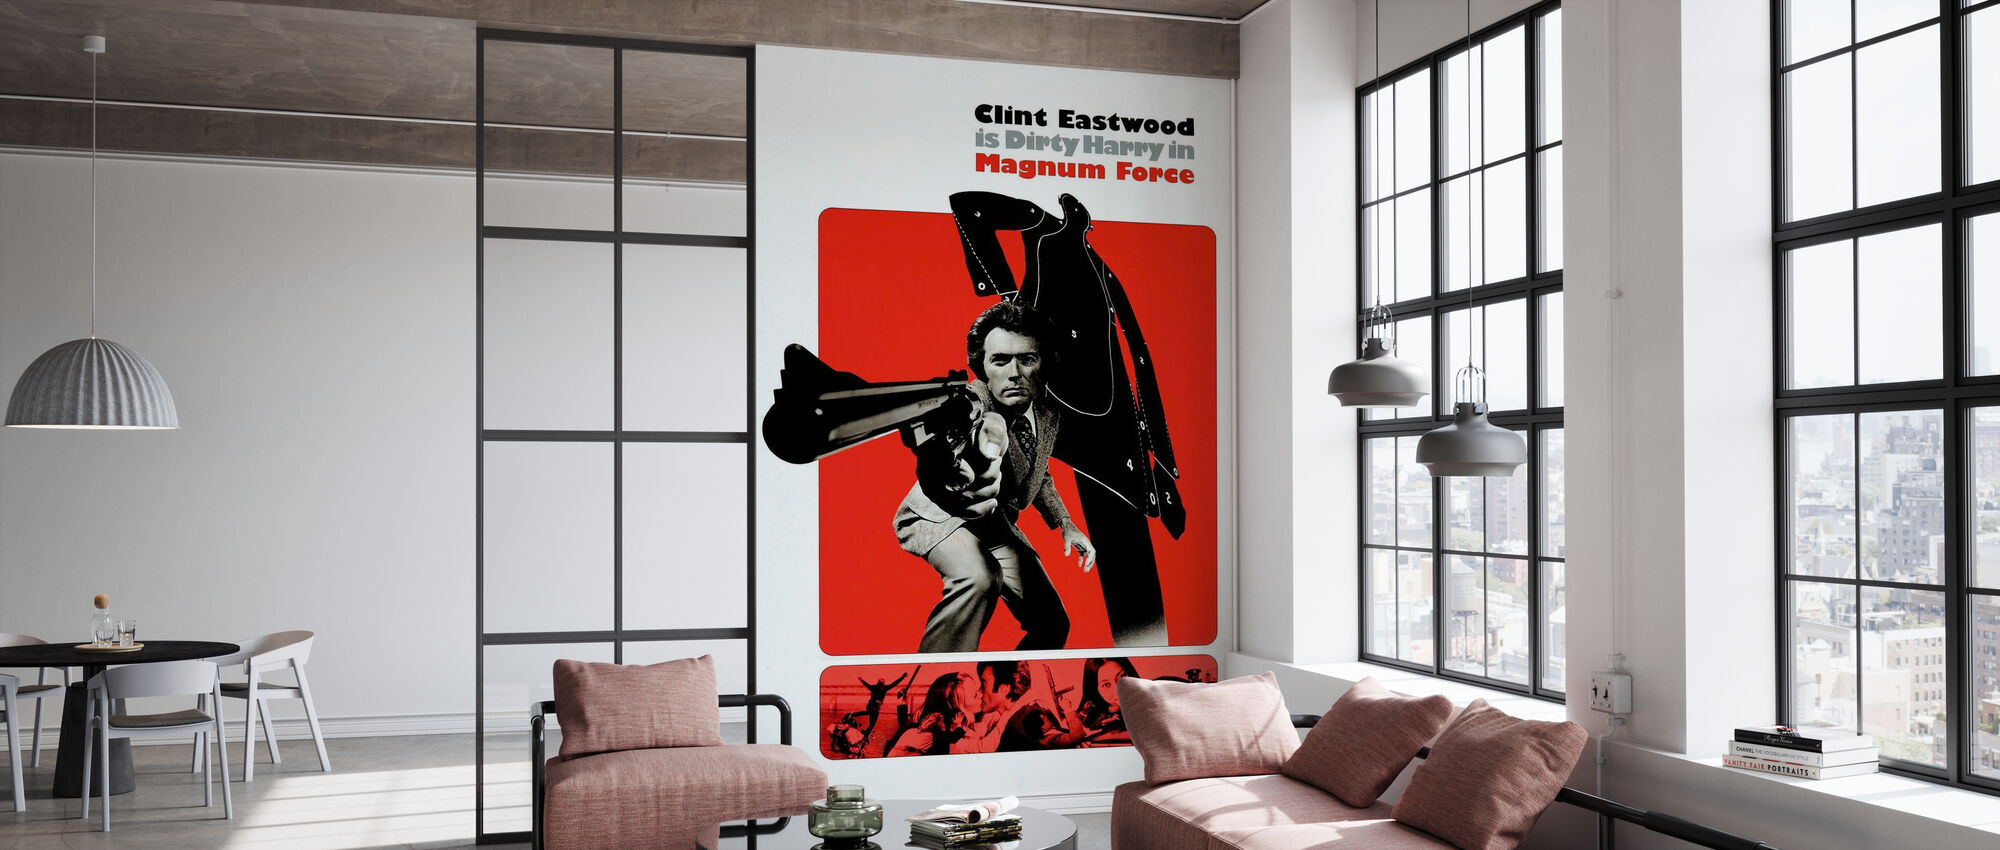 Magnum Force - Clint Eastwood - Wallpaper - Office